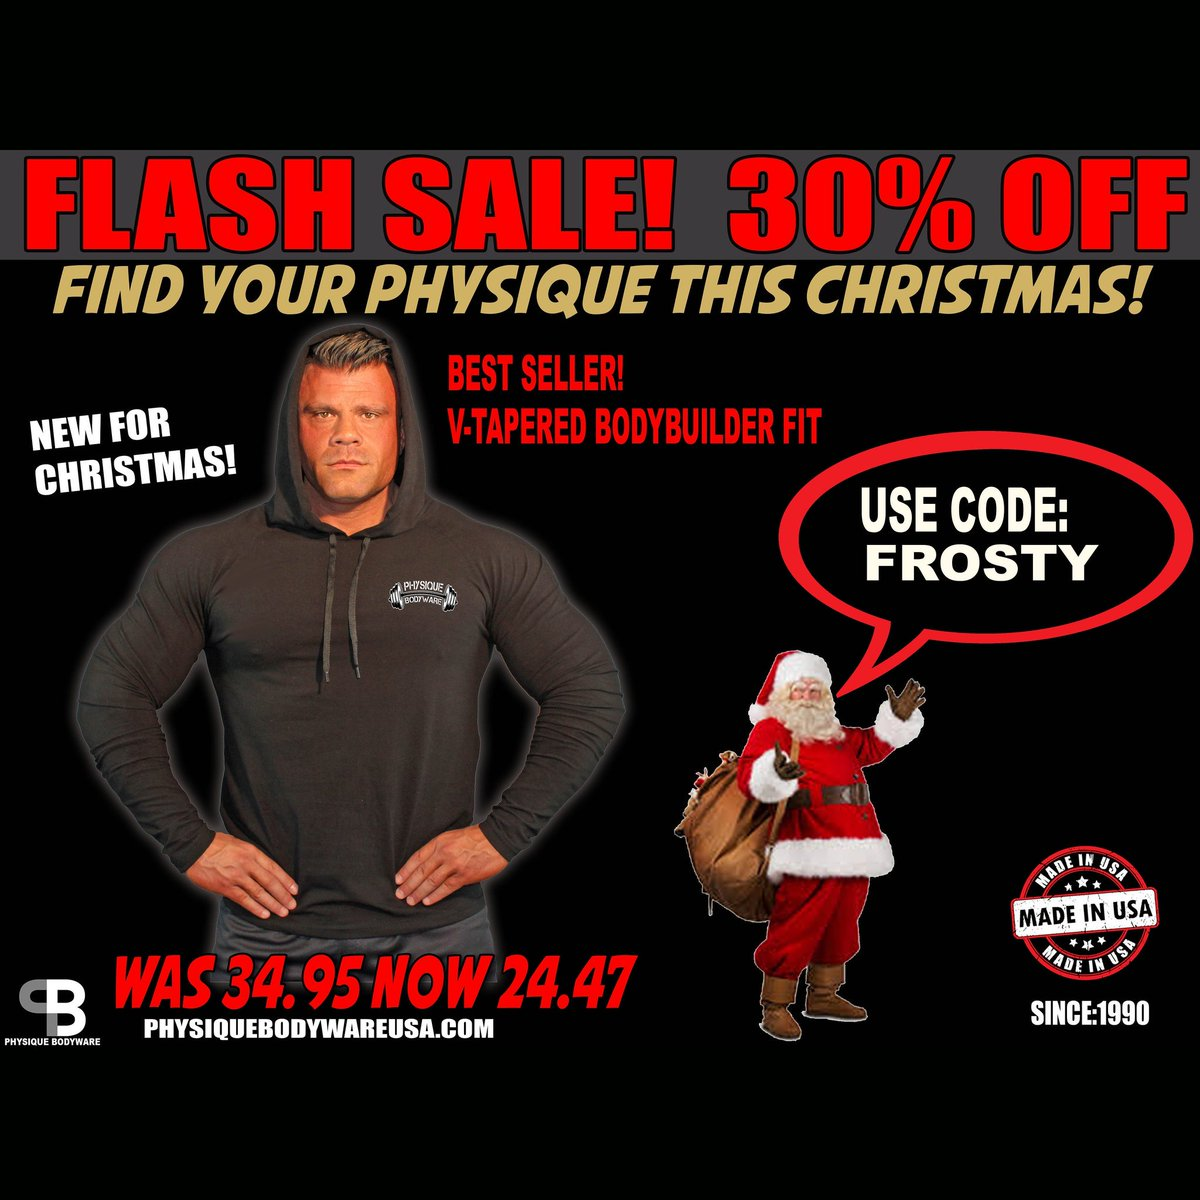 d925954d77dfb Physique Bodyware on Twitter